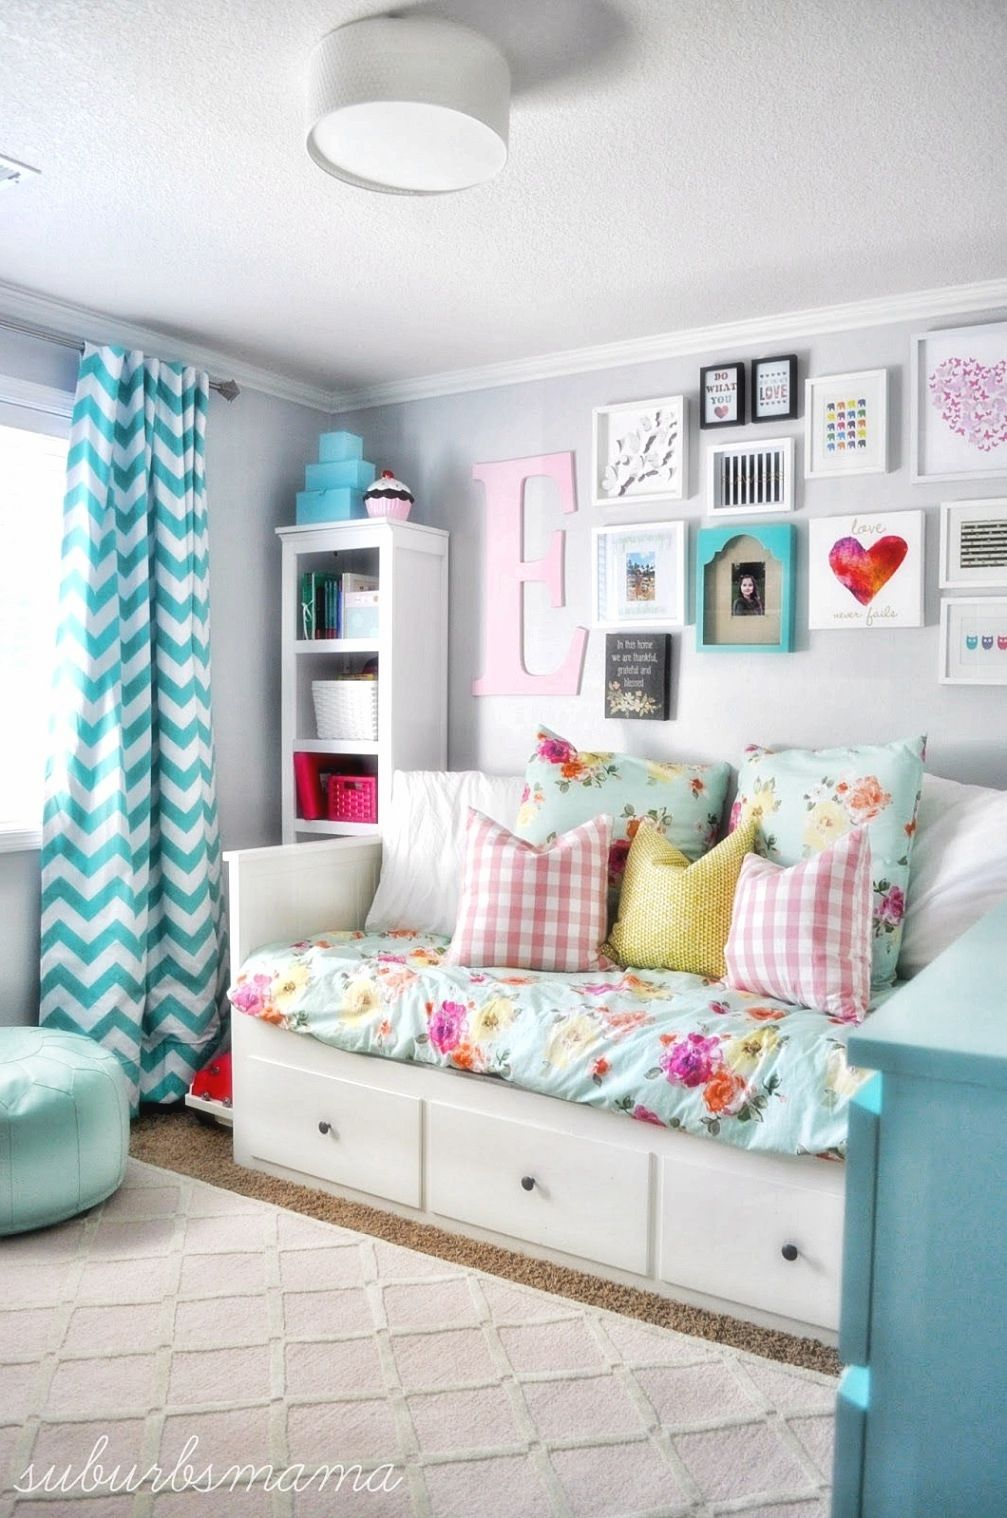 Kids Bedroom Designs For Girls 10 Decorating Ideas For A Girl S Room Josh And Derek Home And Patio Decoration Ideas Girl Bedroom Decor Small Room Bedroom Girl Room